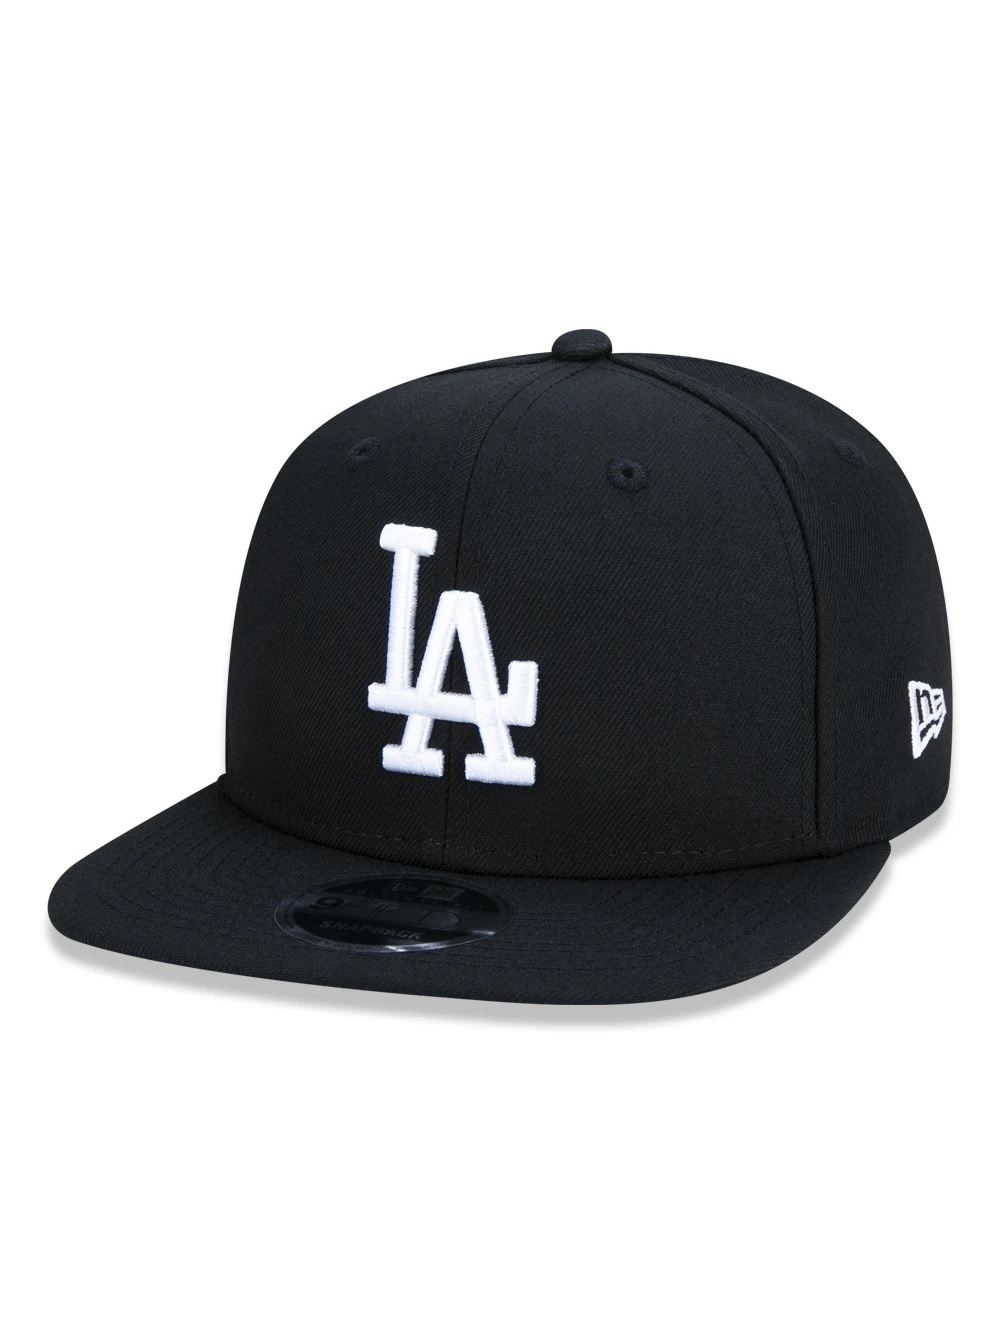 Boné New Era 9fifty Mlb Los Angeles Dodgers Black